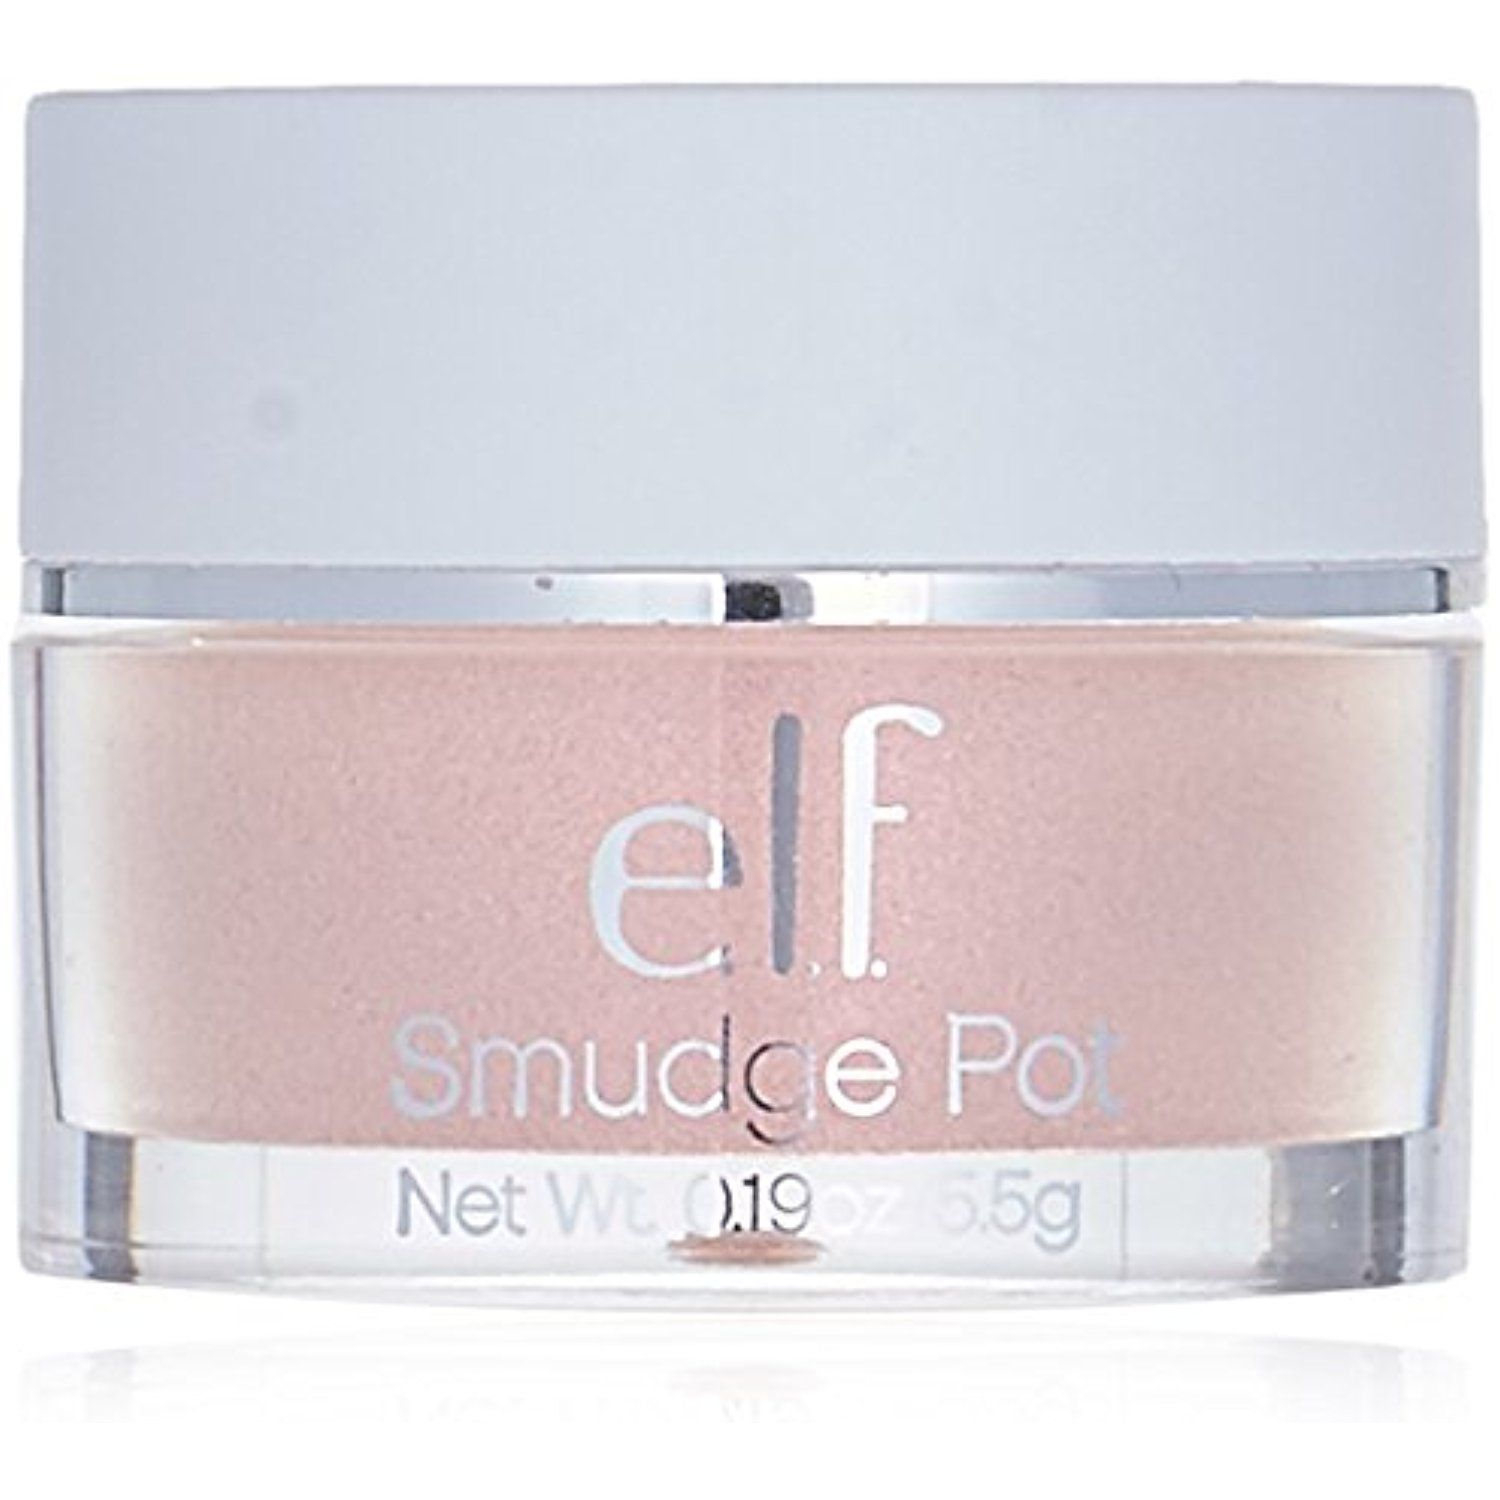 E.l.f. Smudge Pot Ain't That Sweet, 0.19 Ounce Find